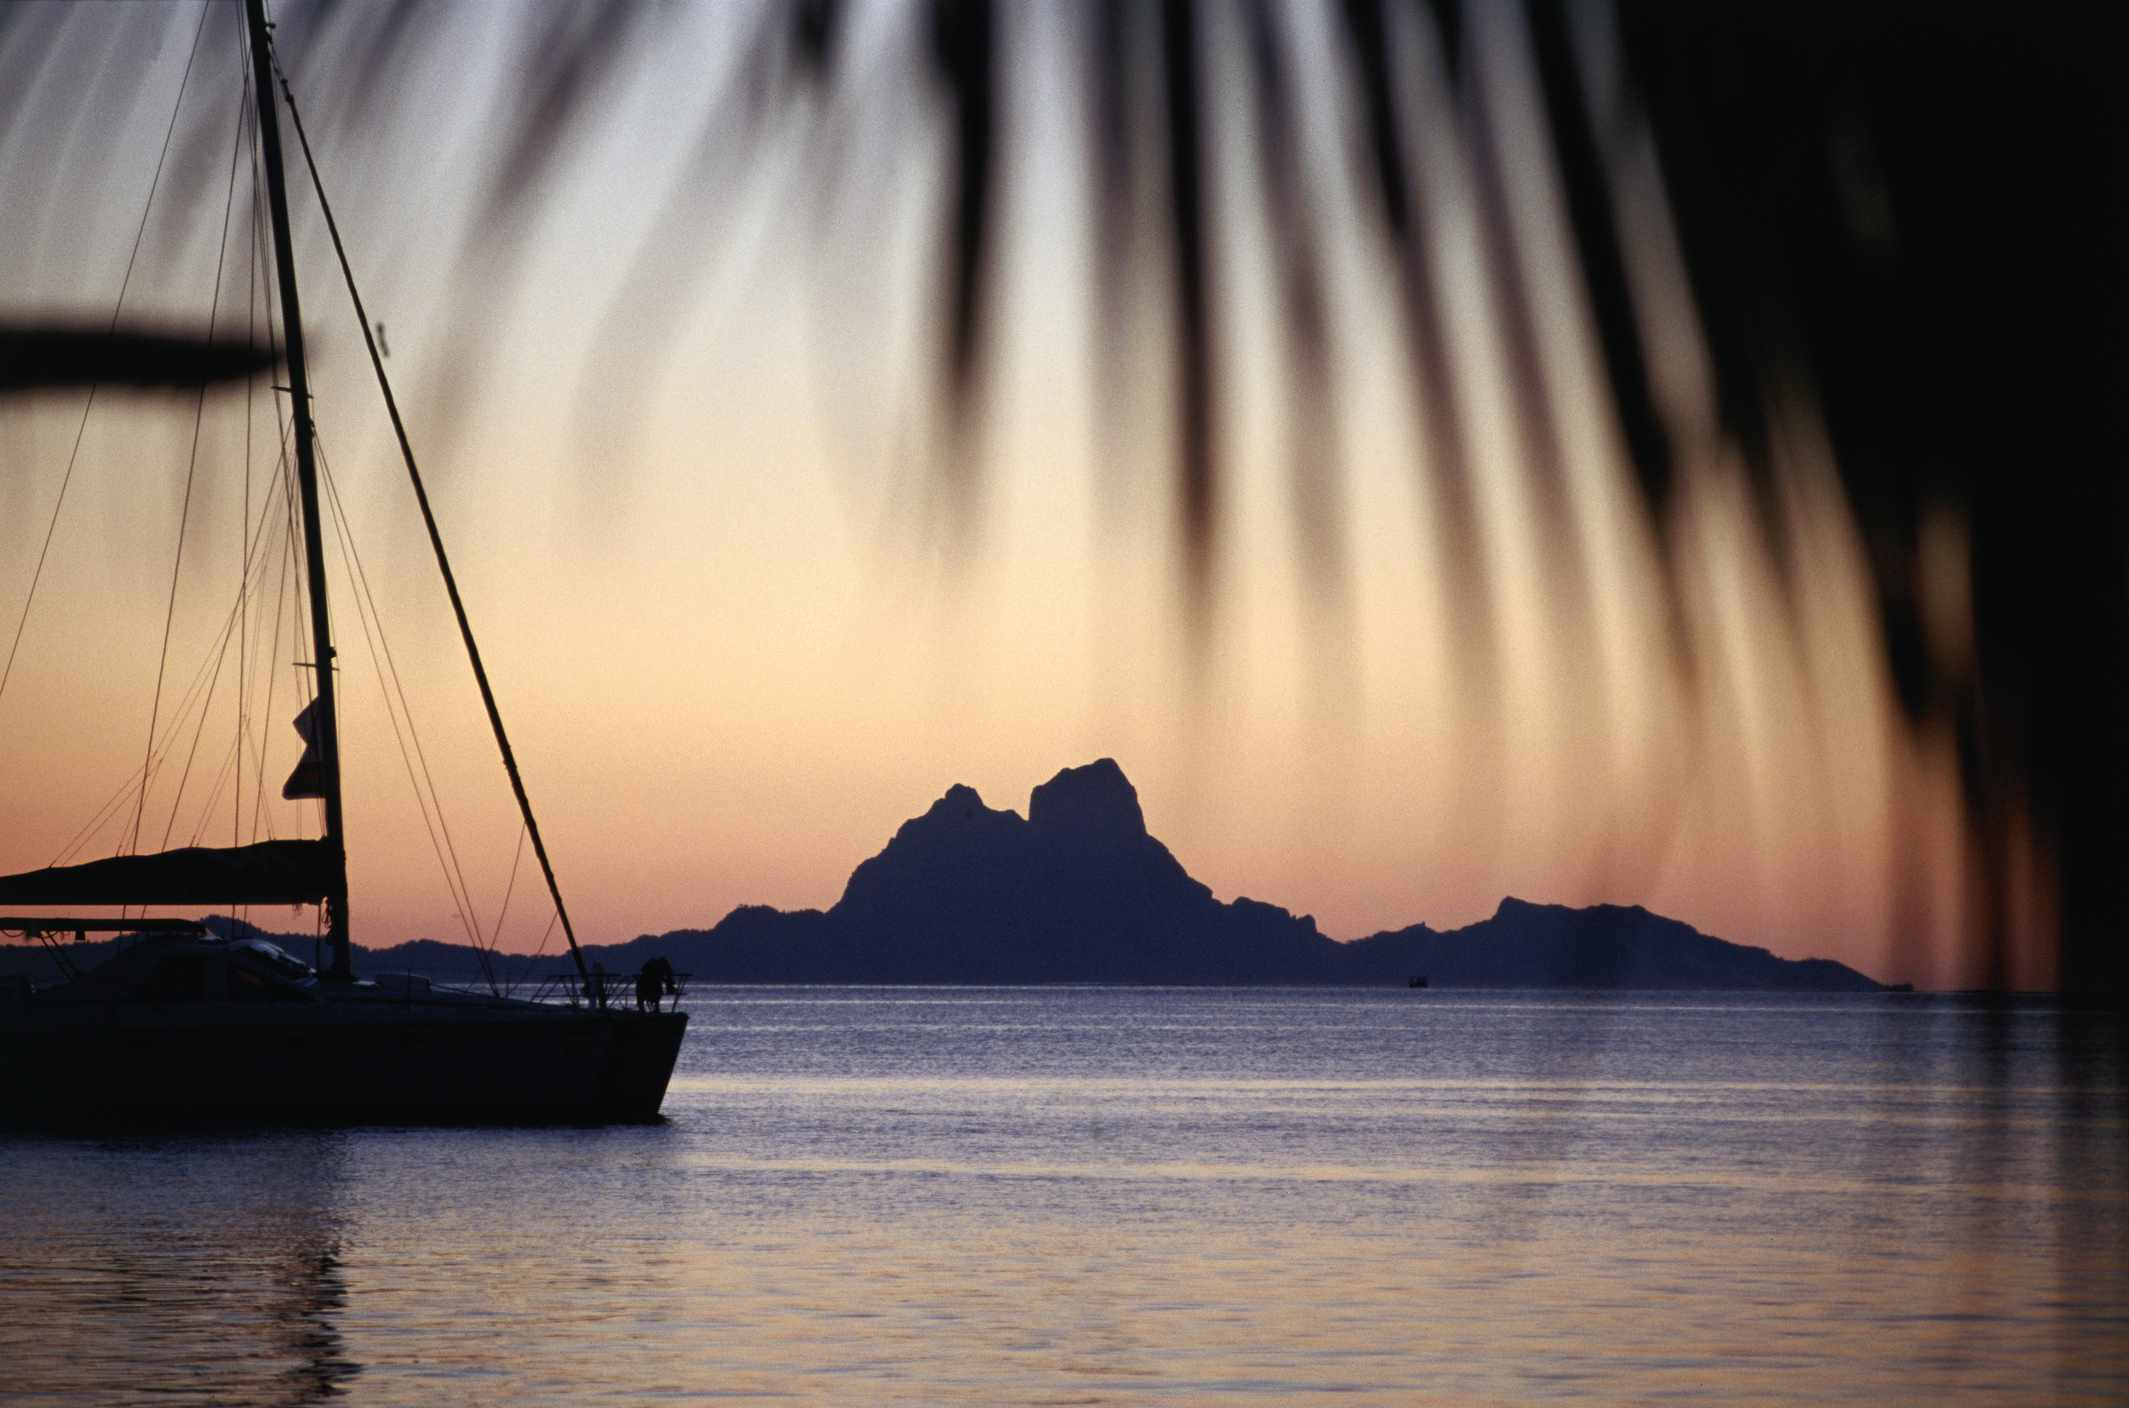 Boat with Bora Bora Island in the distance at sunset.